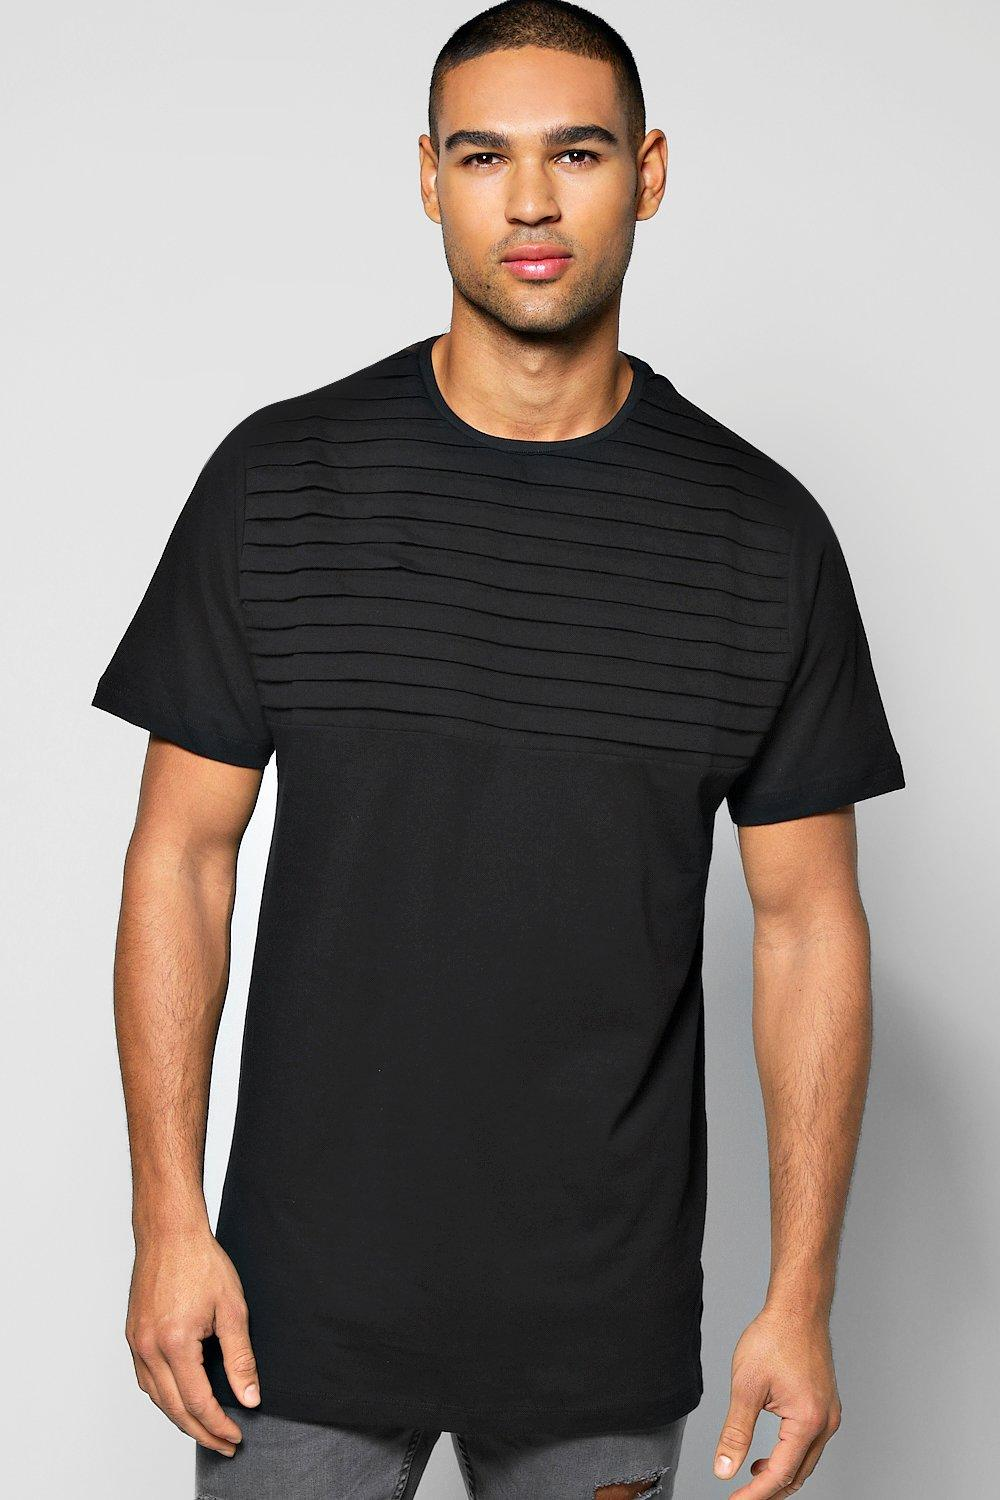 Longline Biker Pleated T Shirt